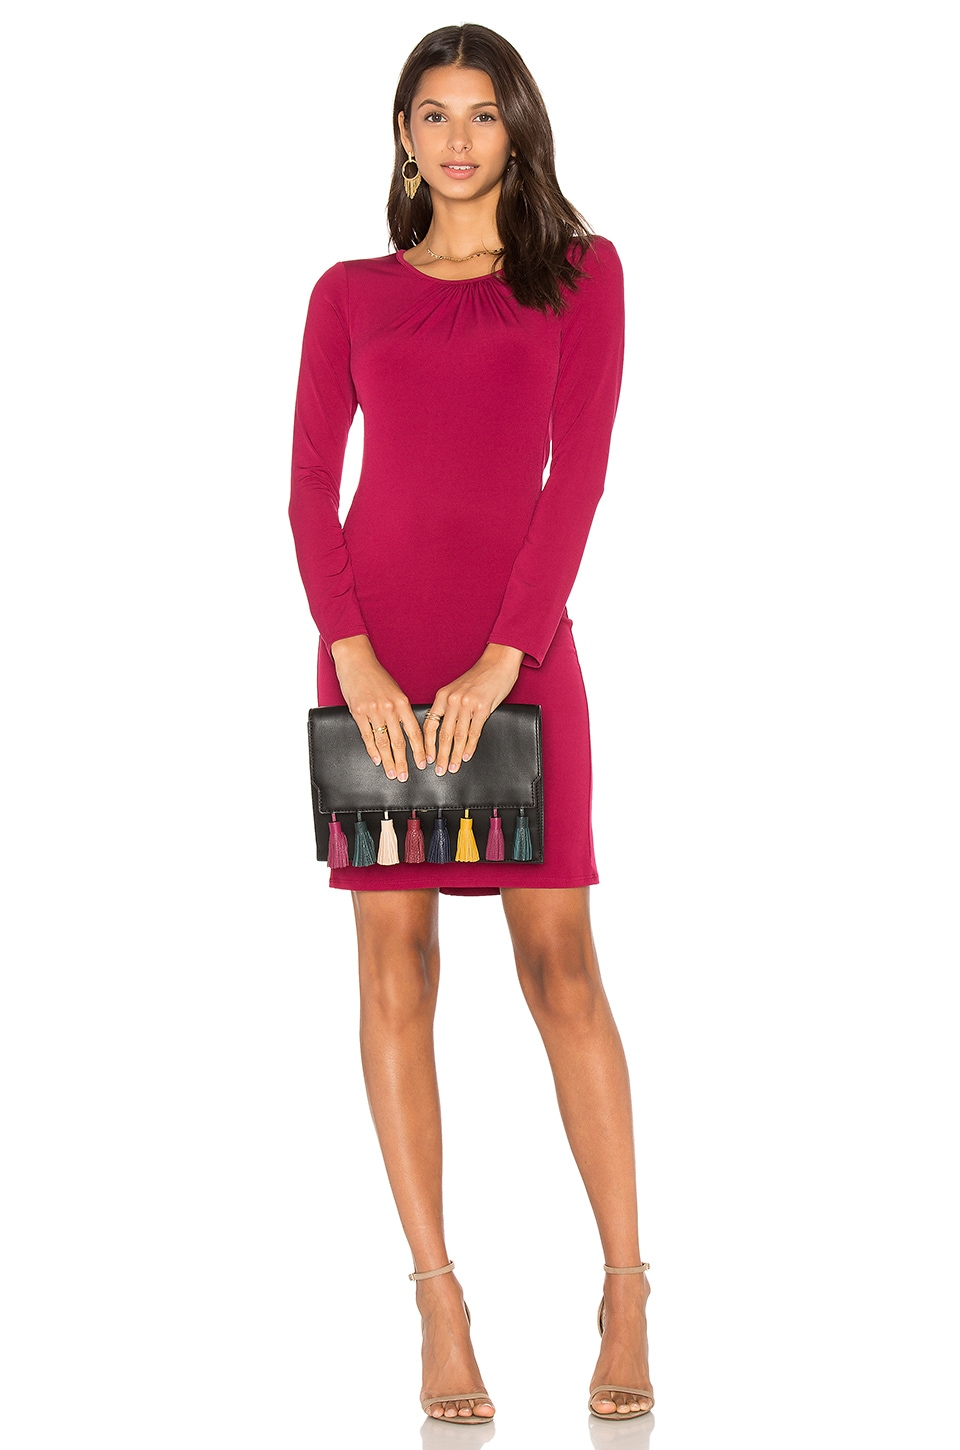 Velvet by Graham & Spencer Hester Long Sleeve Bodycon Dress in Burgundy